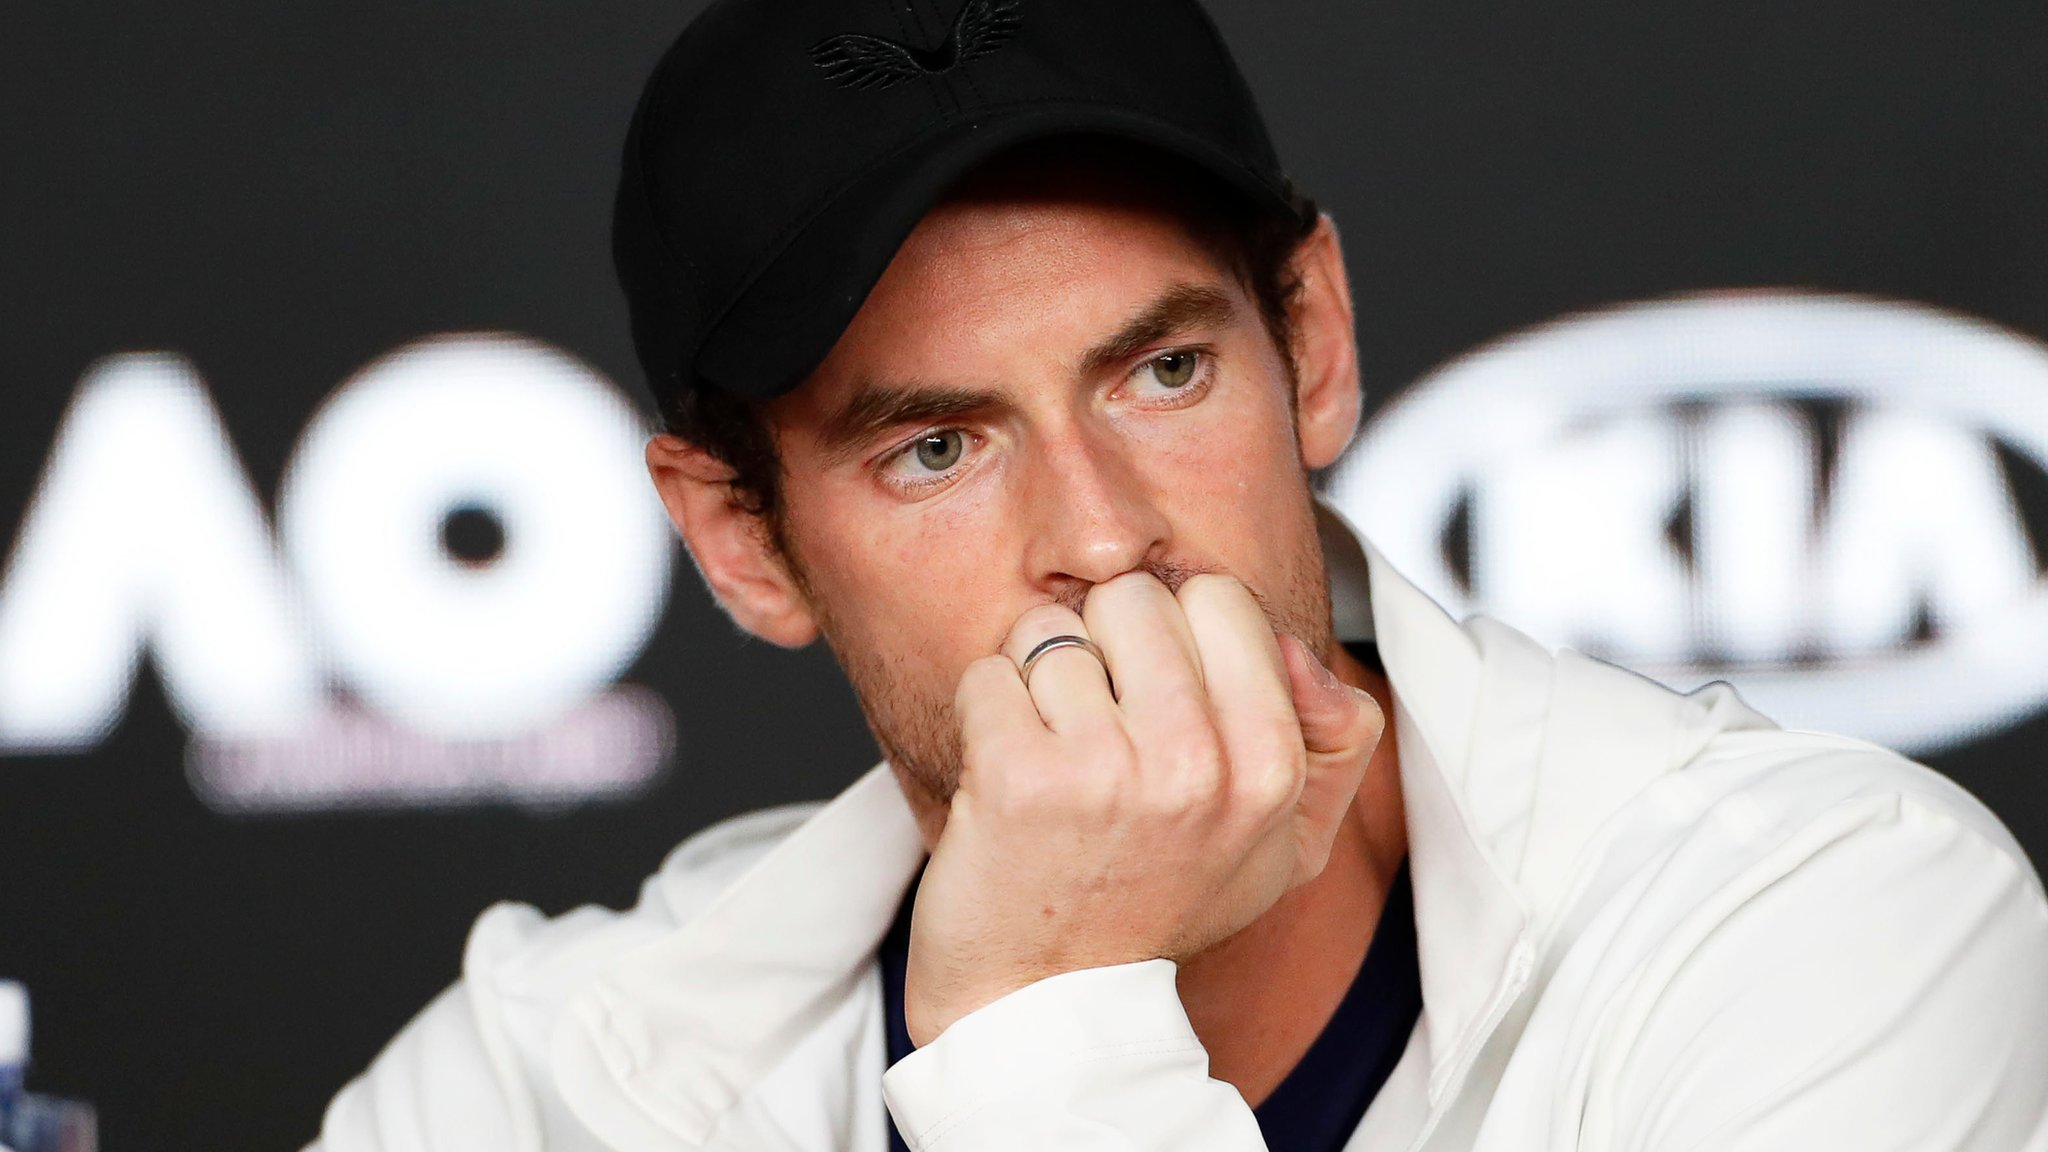 'Quality of life' is key as Murray ponders further hip surgery